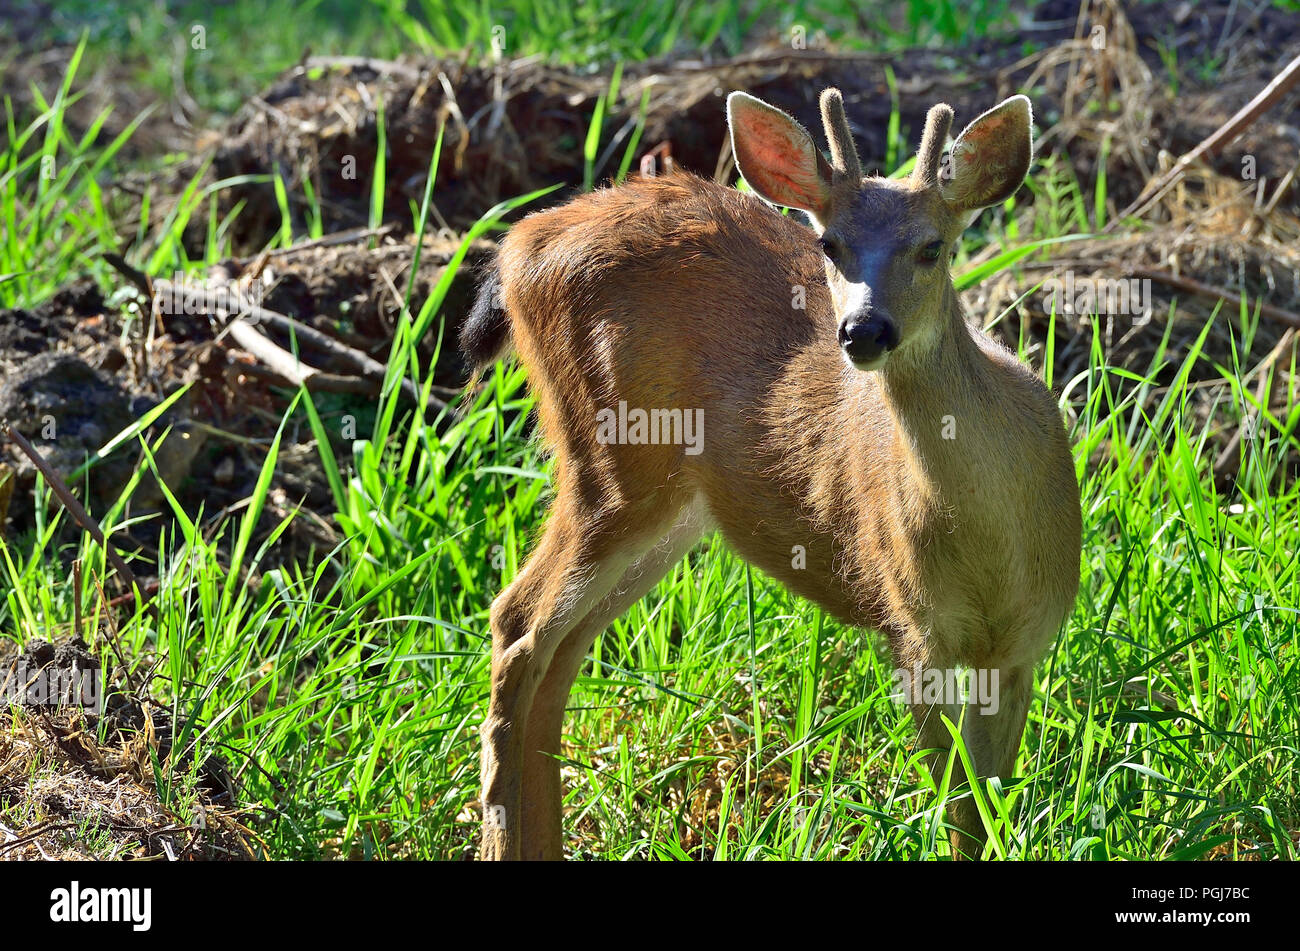 A young Black-tailed buck deer (Odocoileus hemionus columbianus); looking up as he feeds on some green vegetation on Vancouver Island British Columbia - Stock Image